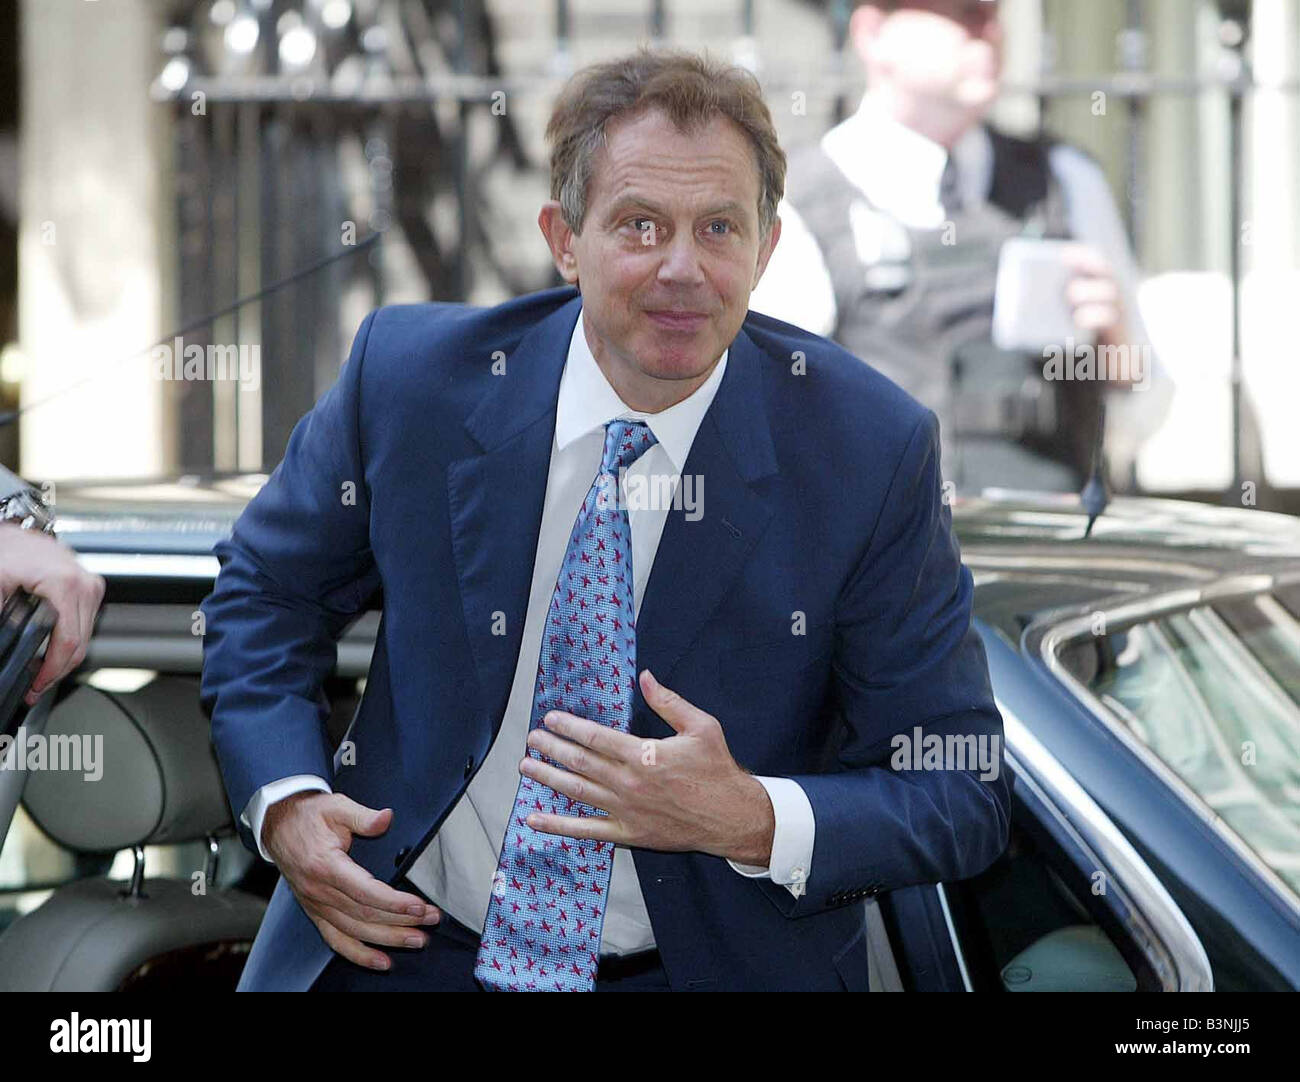 Tony Blair getting out of a car wearing blue suit May 2004 - Stock Image